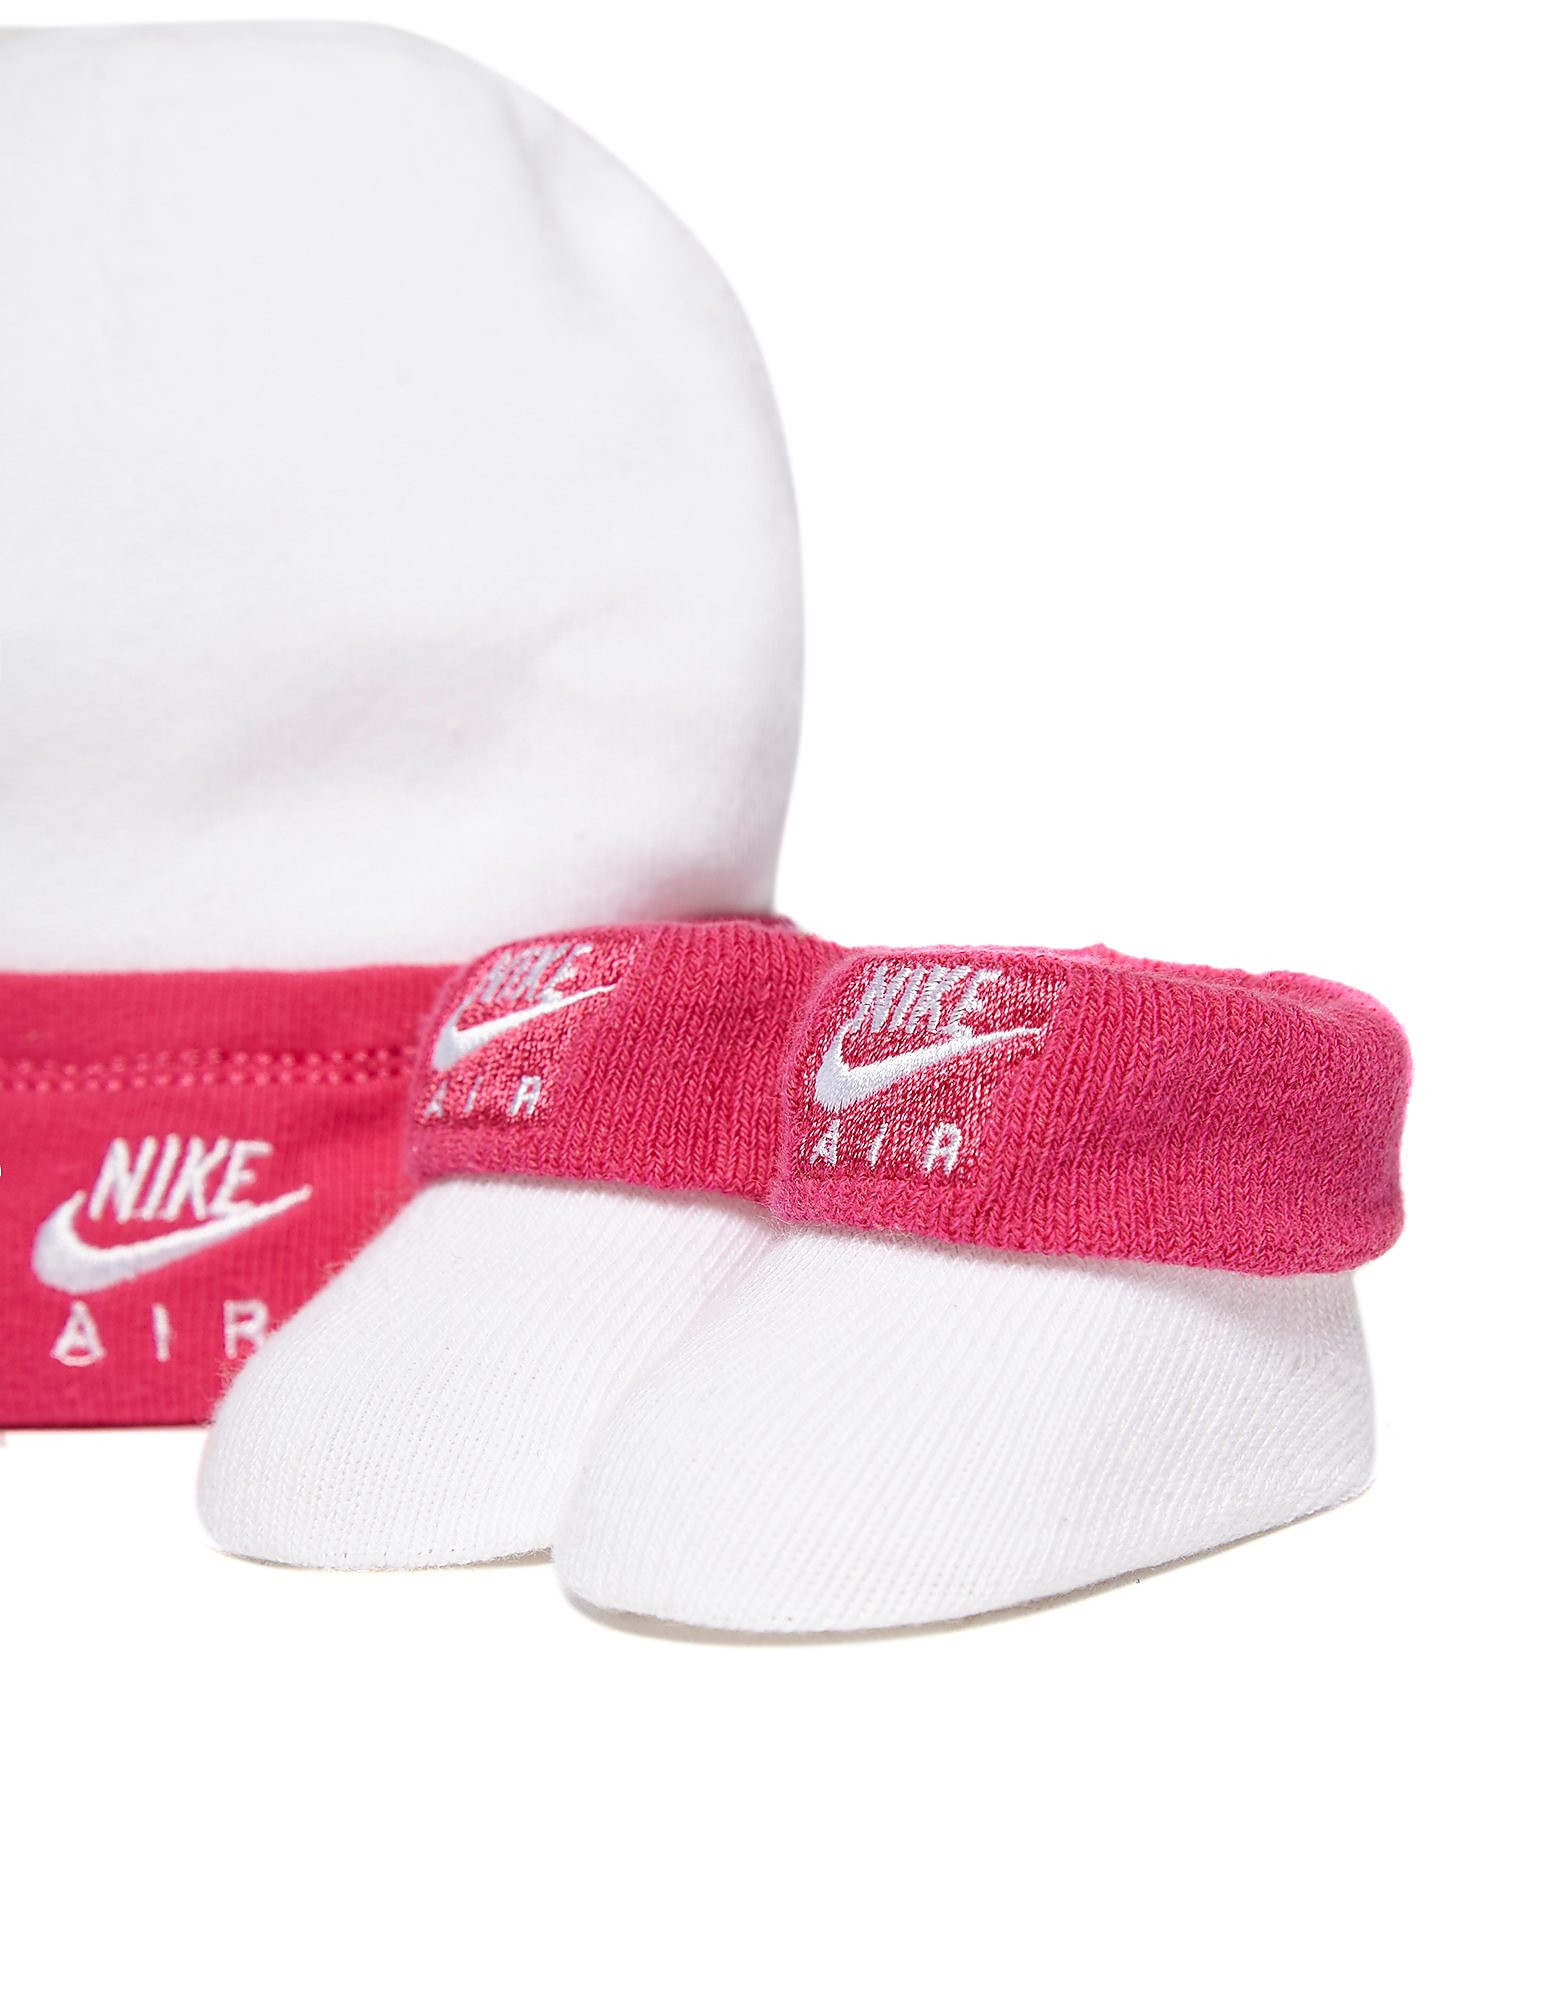 Nike Air Three Piece Infant